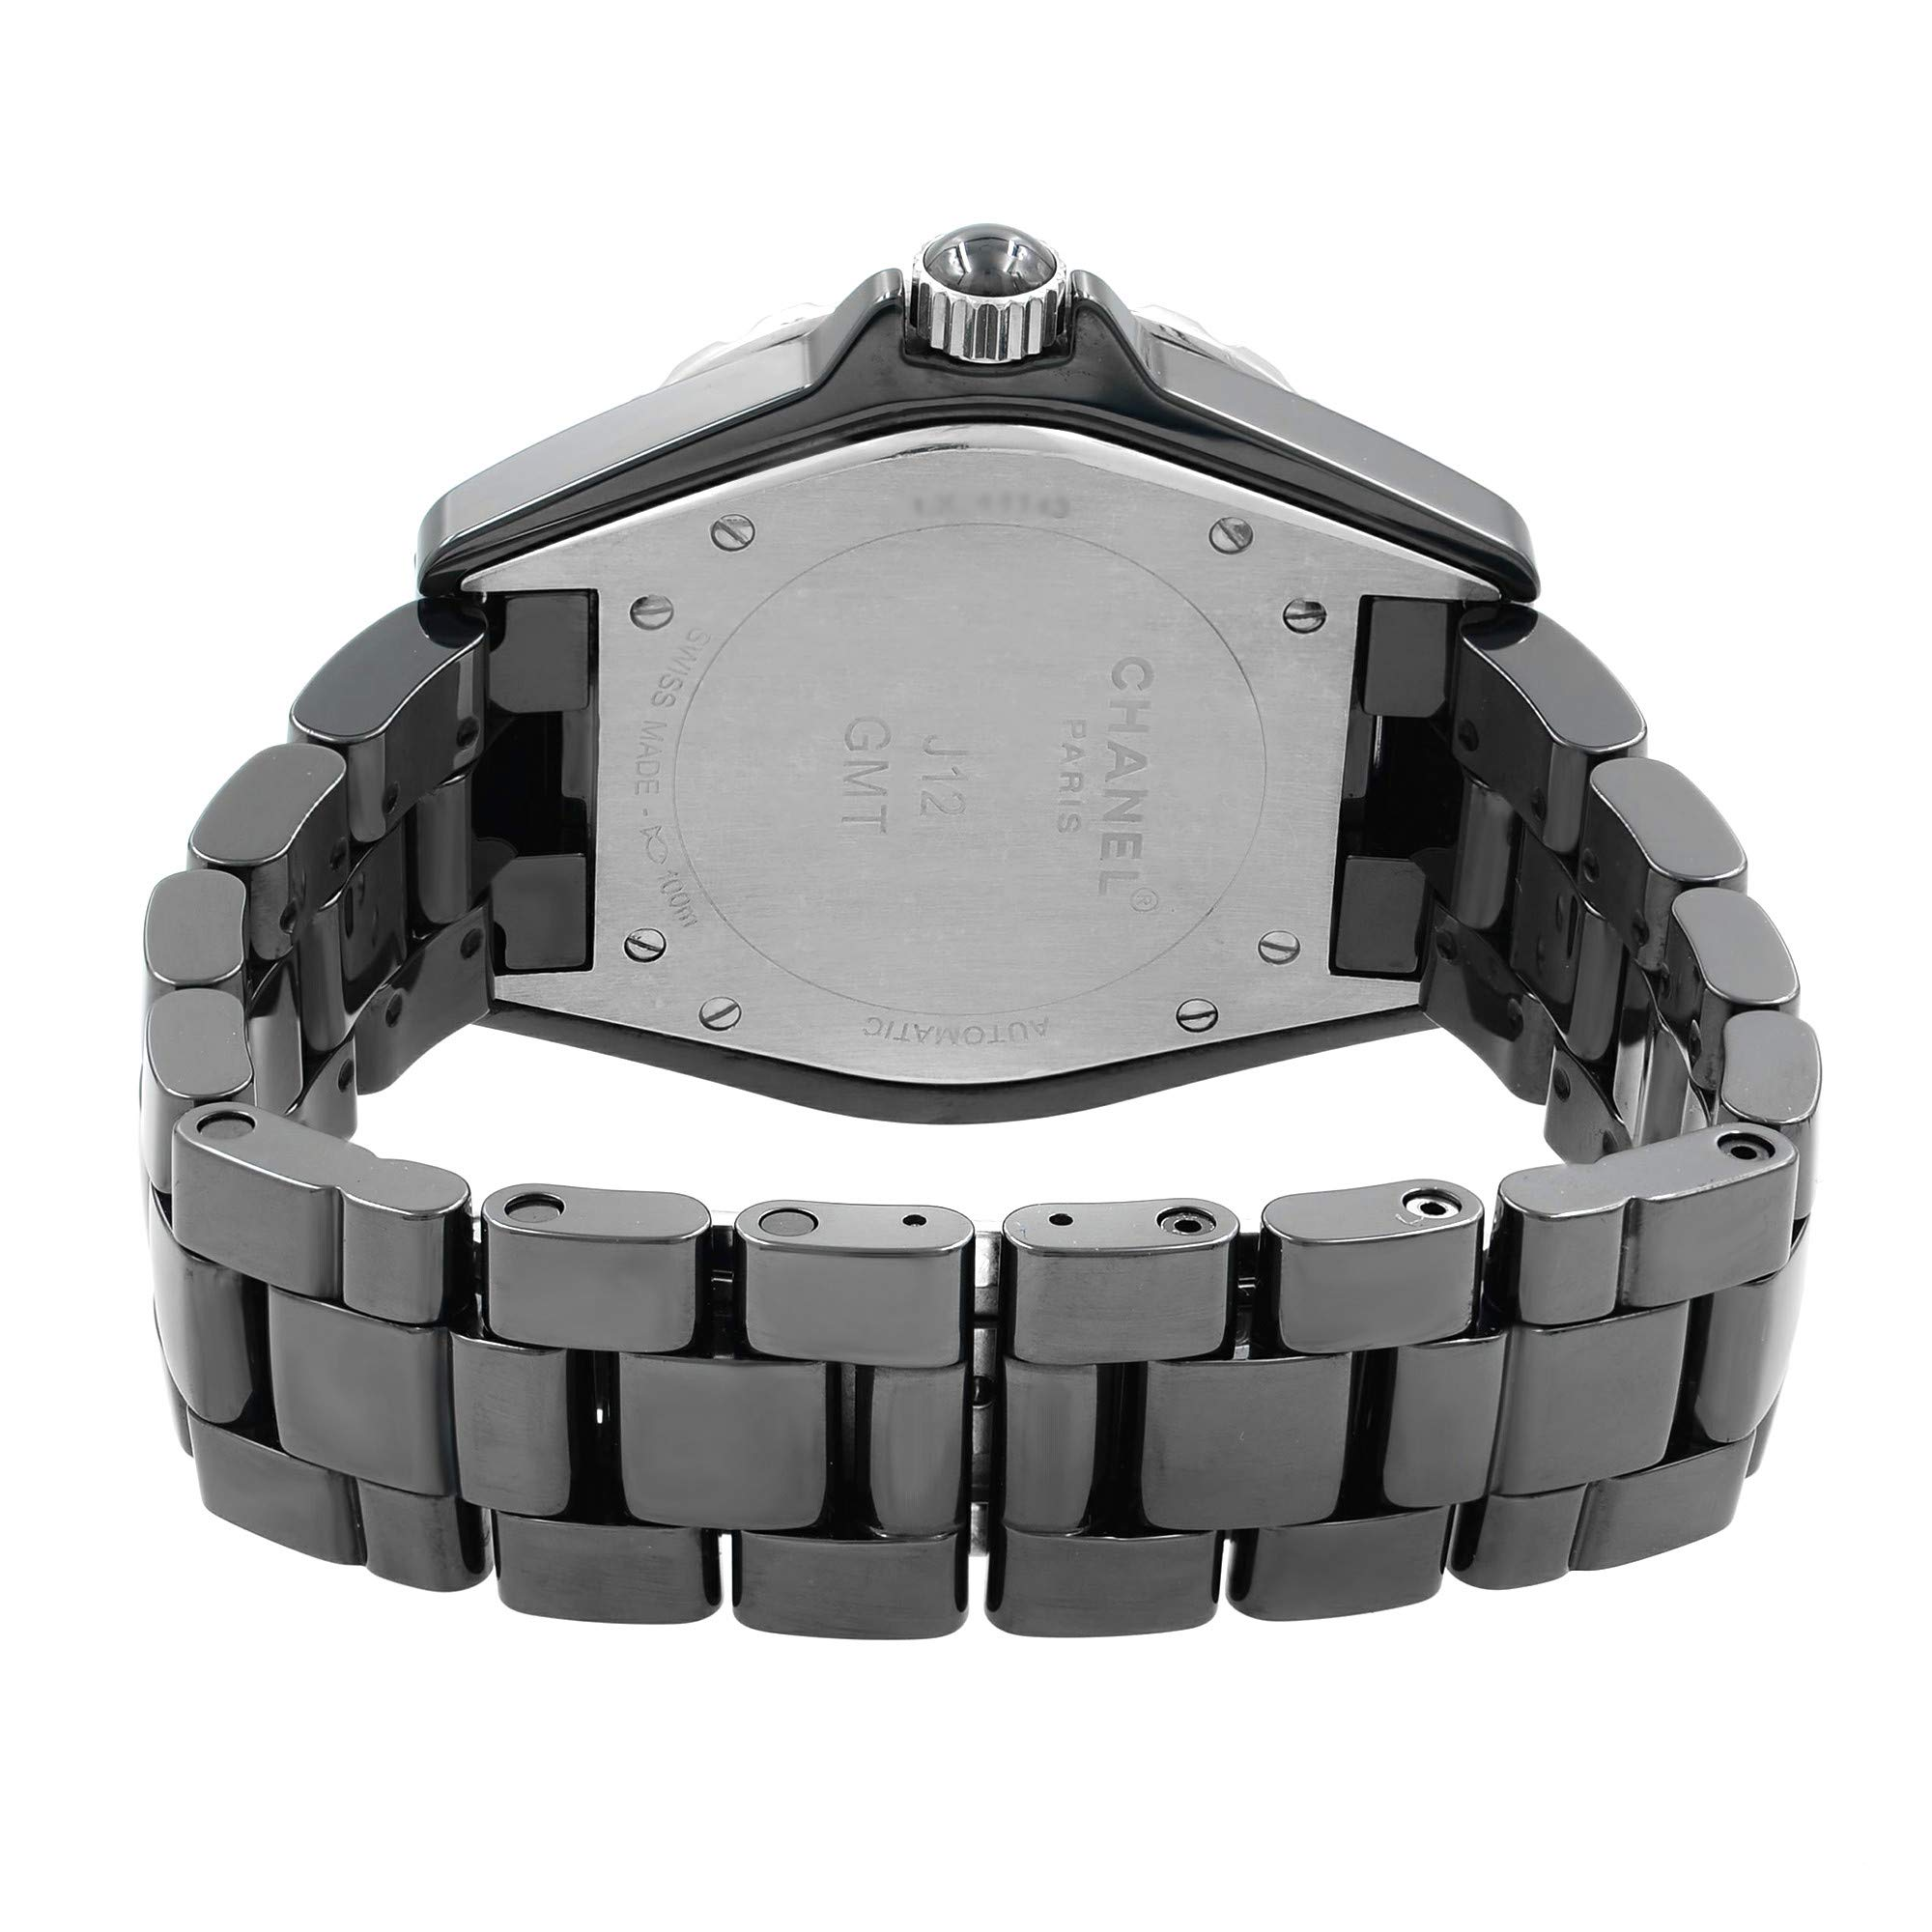 Chanel J12 Automatic-self-Wind Male Watch H2012 (Certified Pre-Owned) by CHANEL (Image #2)